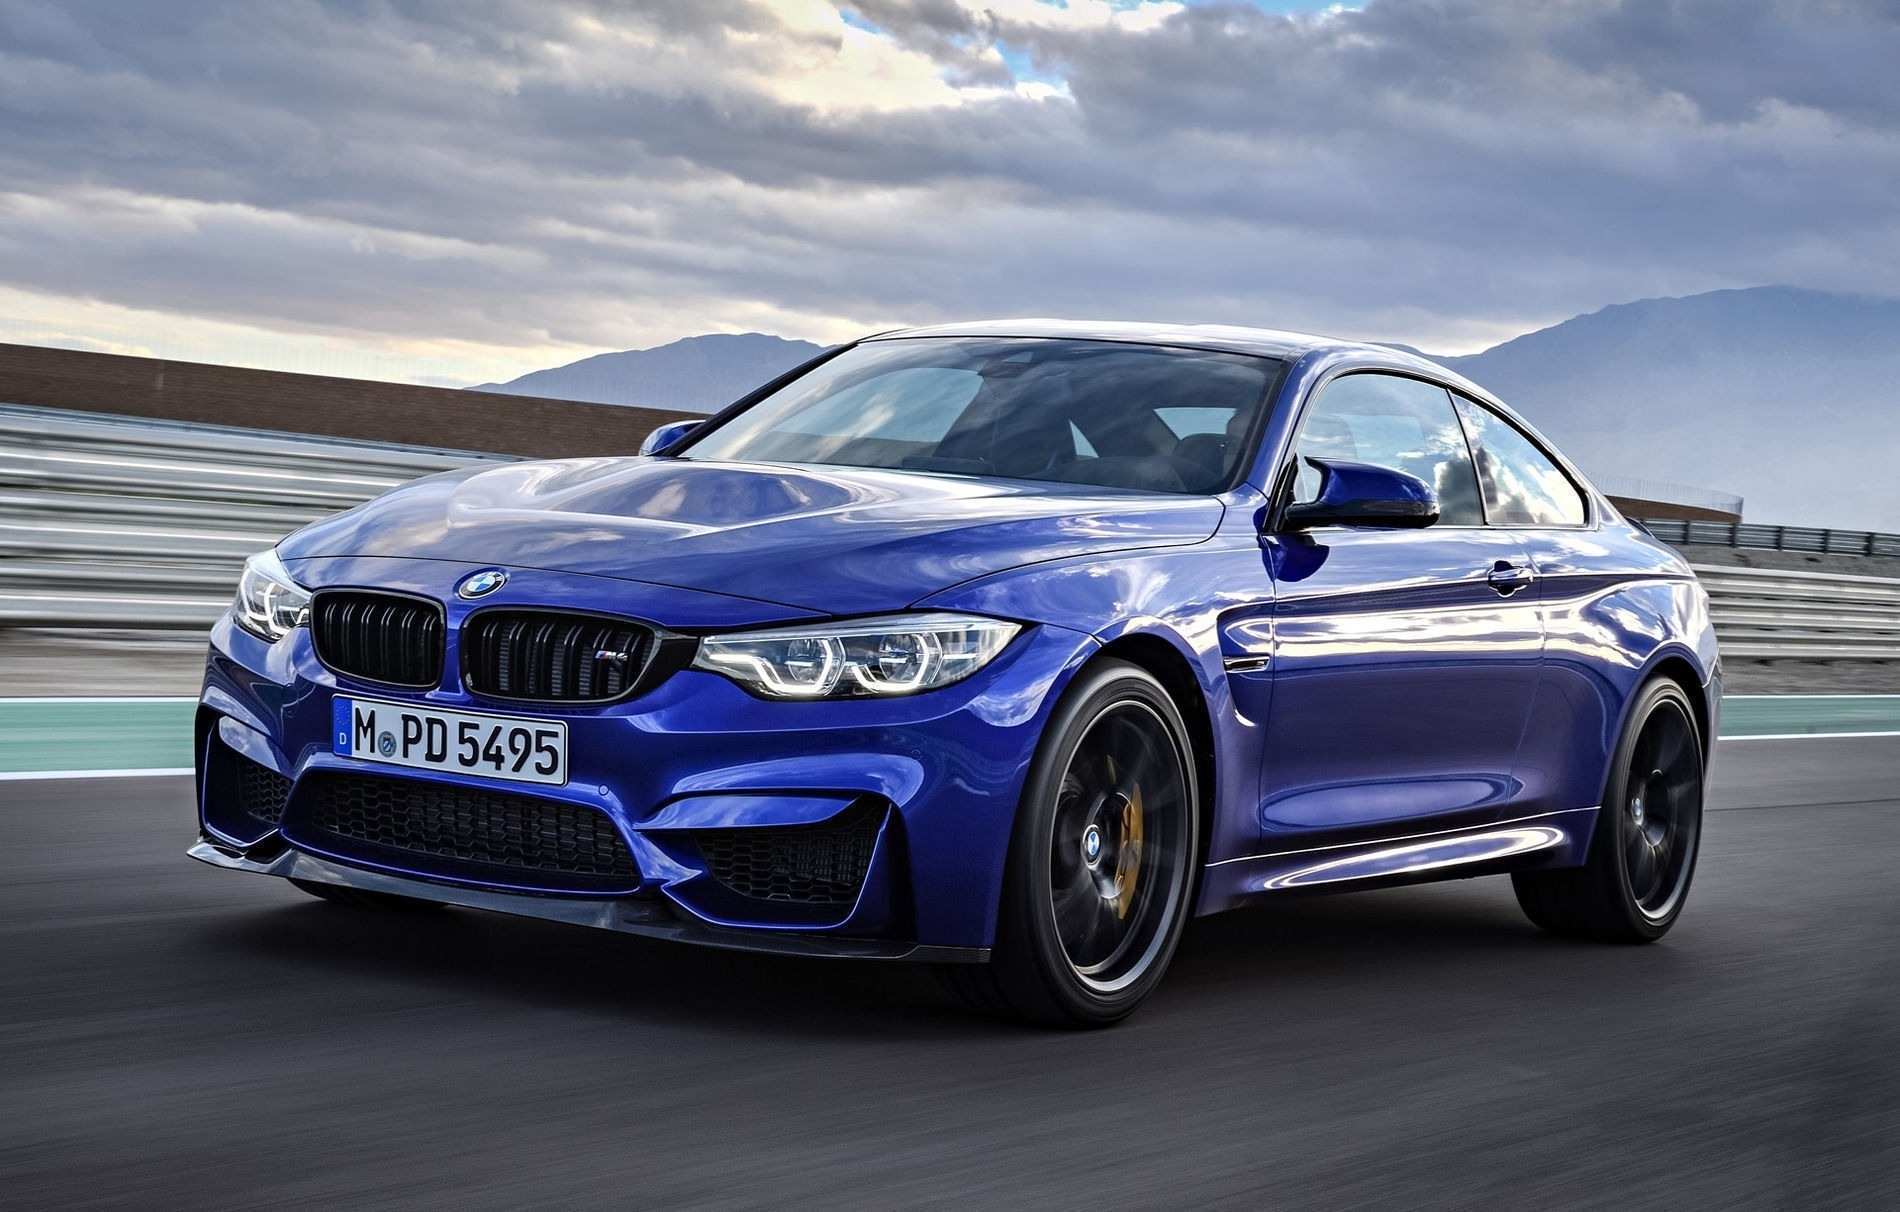 36 The Best 2020 BMW M4 Colors Price Design And Review